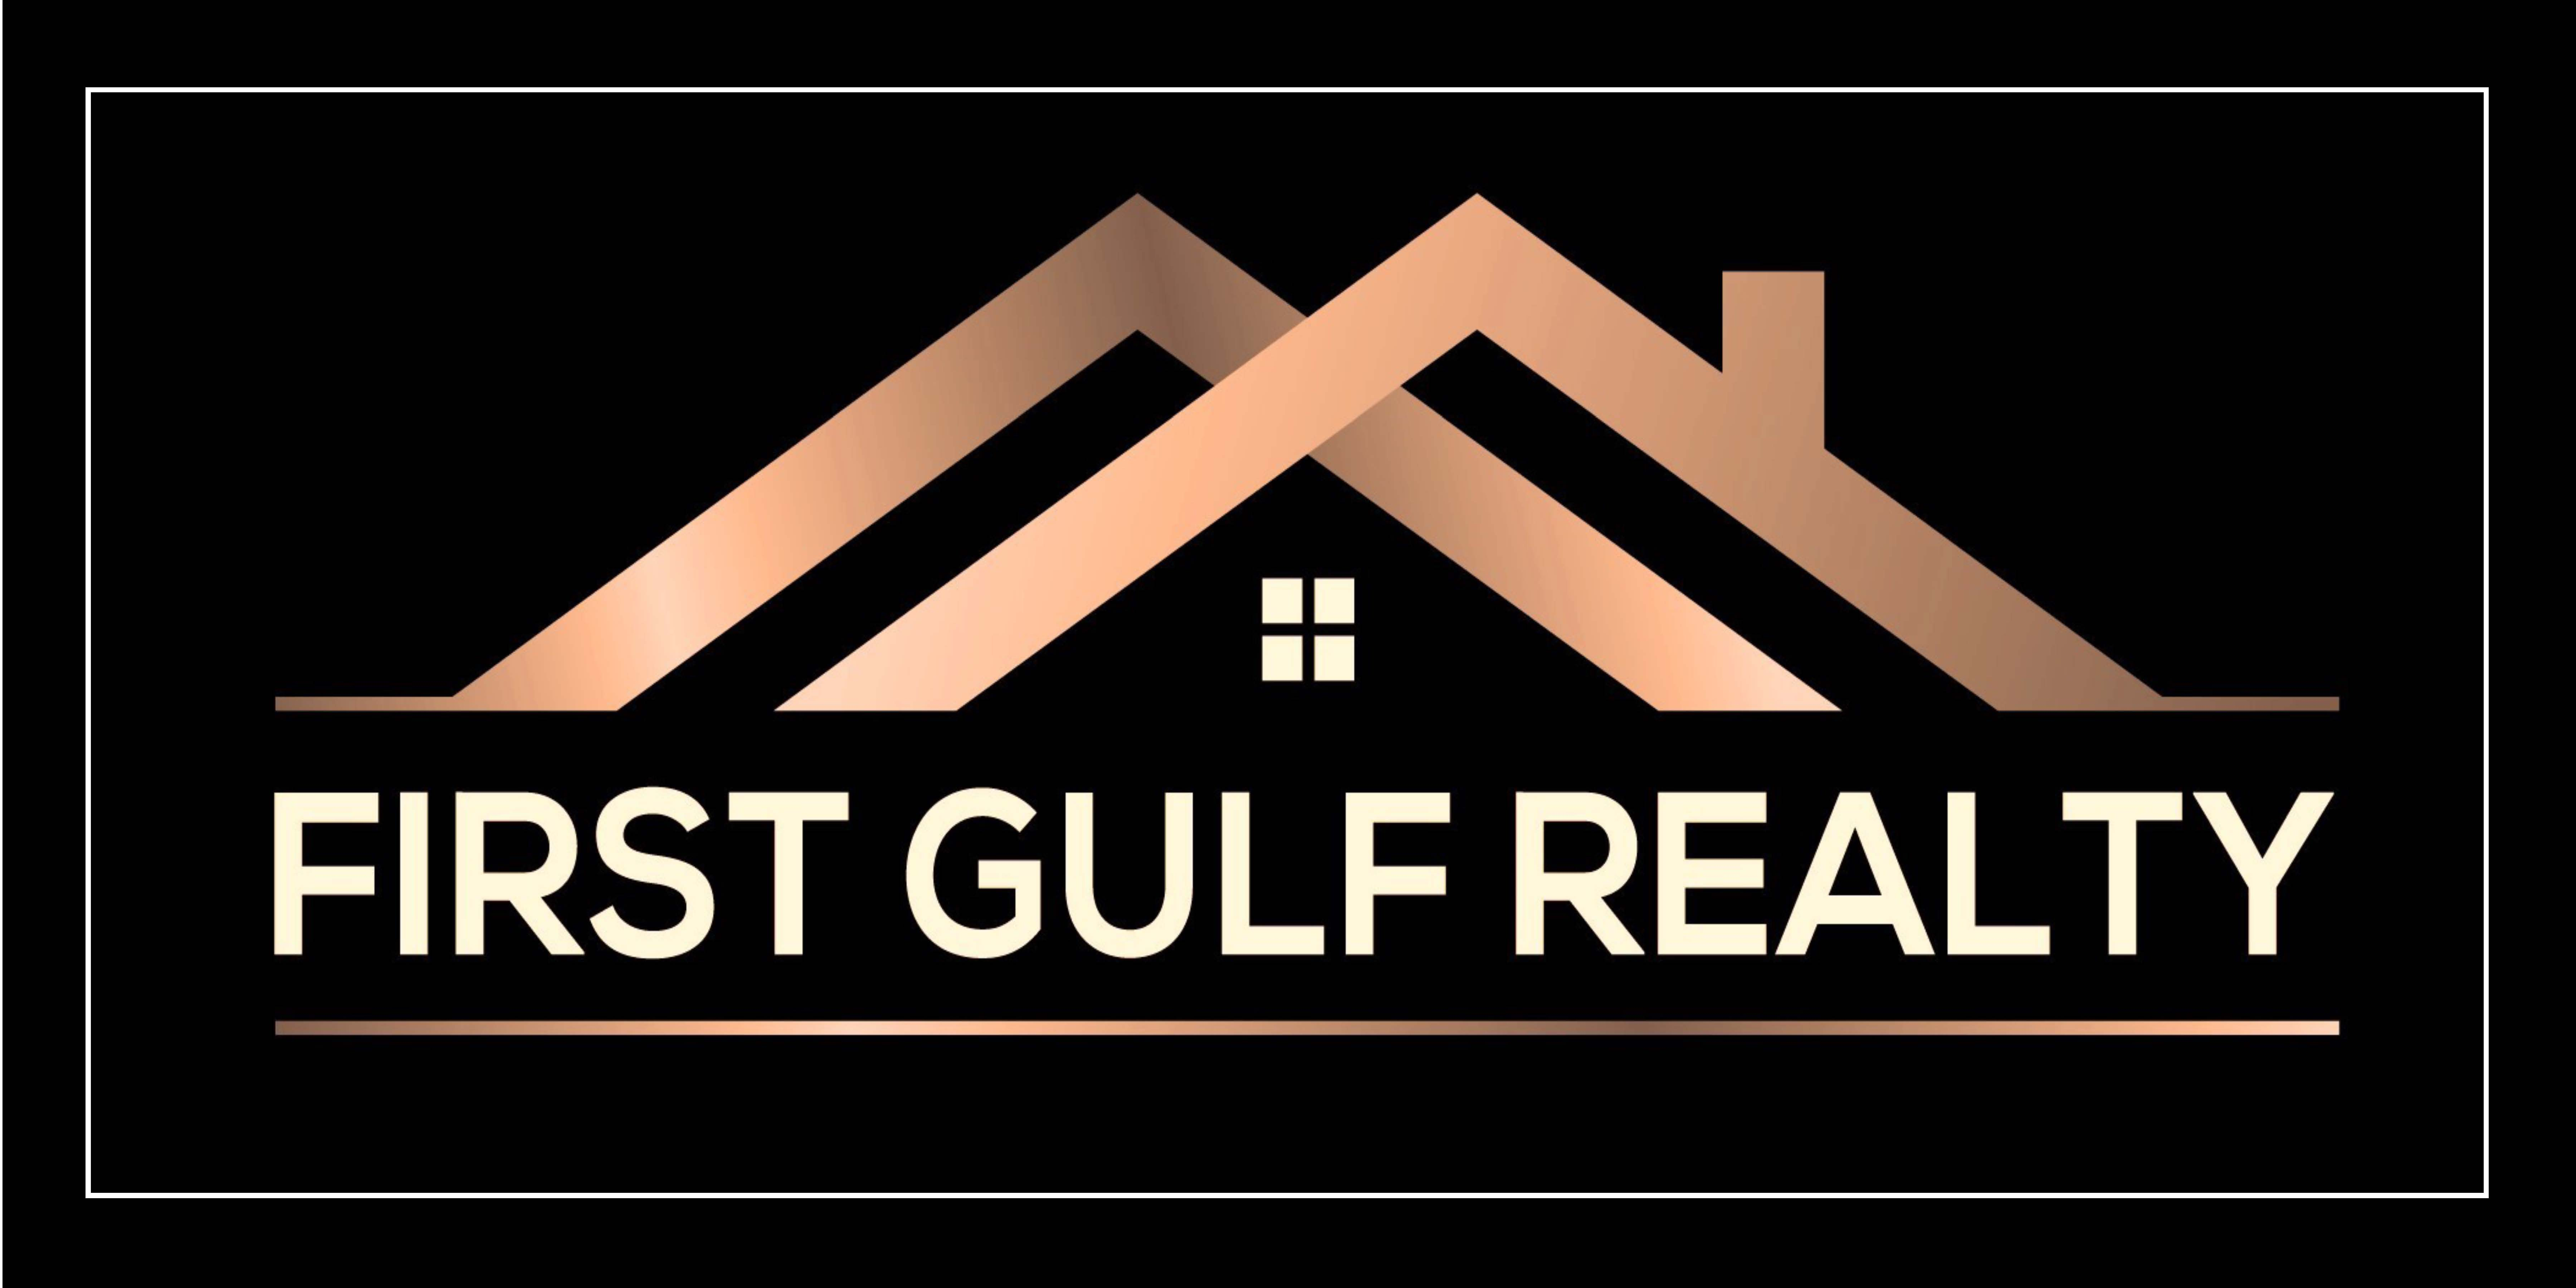 FIRST GULF REALTY